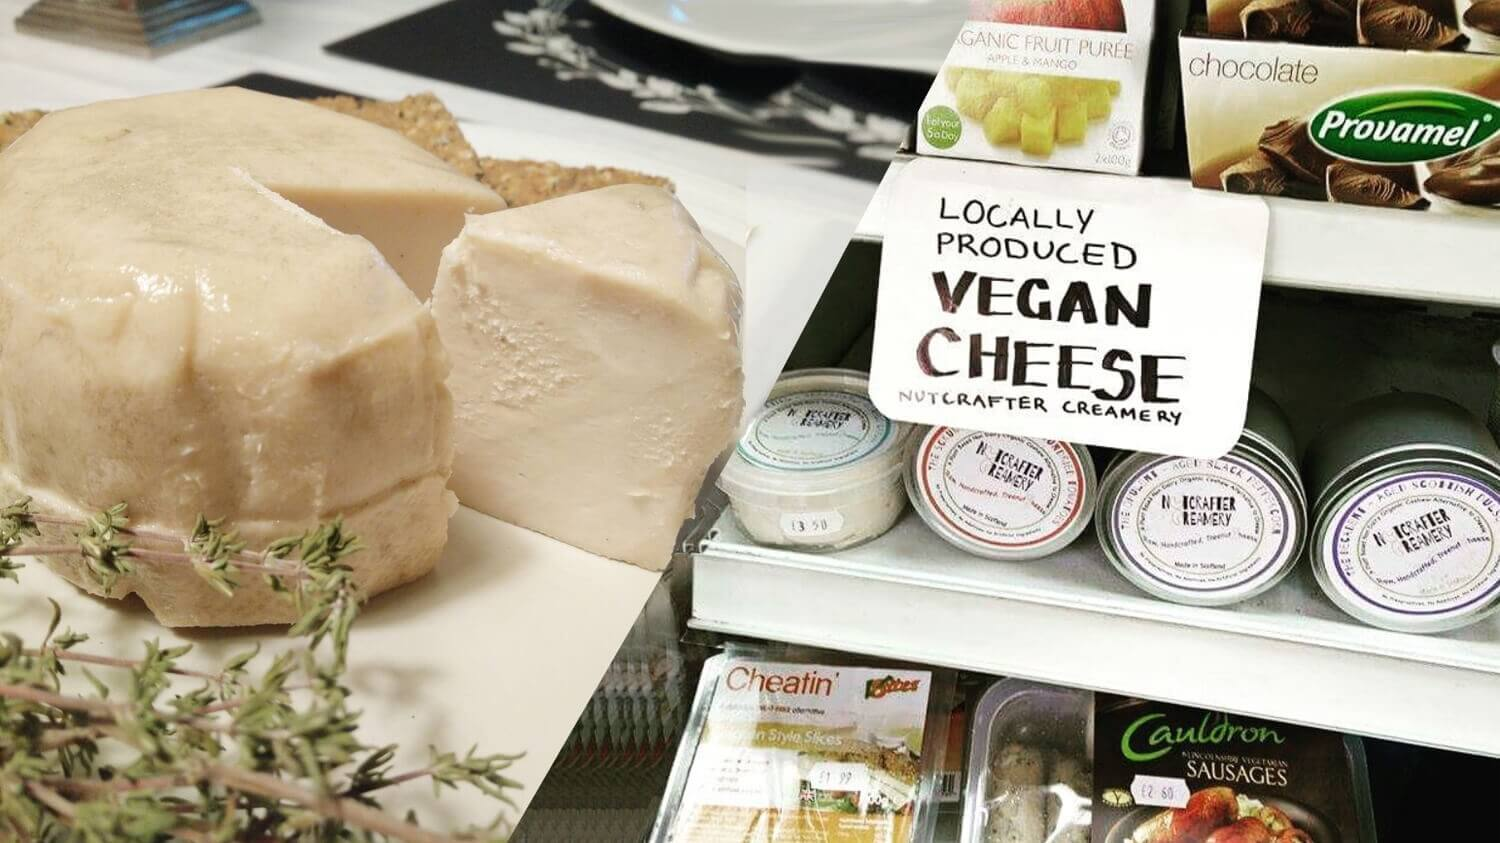 Scotland's Nutcrafter Creamery Says Its Vegan Cheese Can Convince Vegetarians to Give Up Dairy